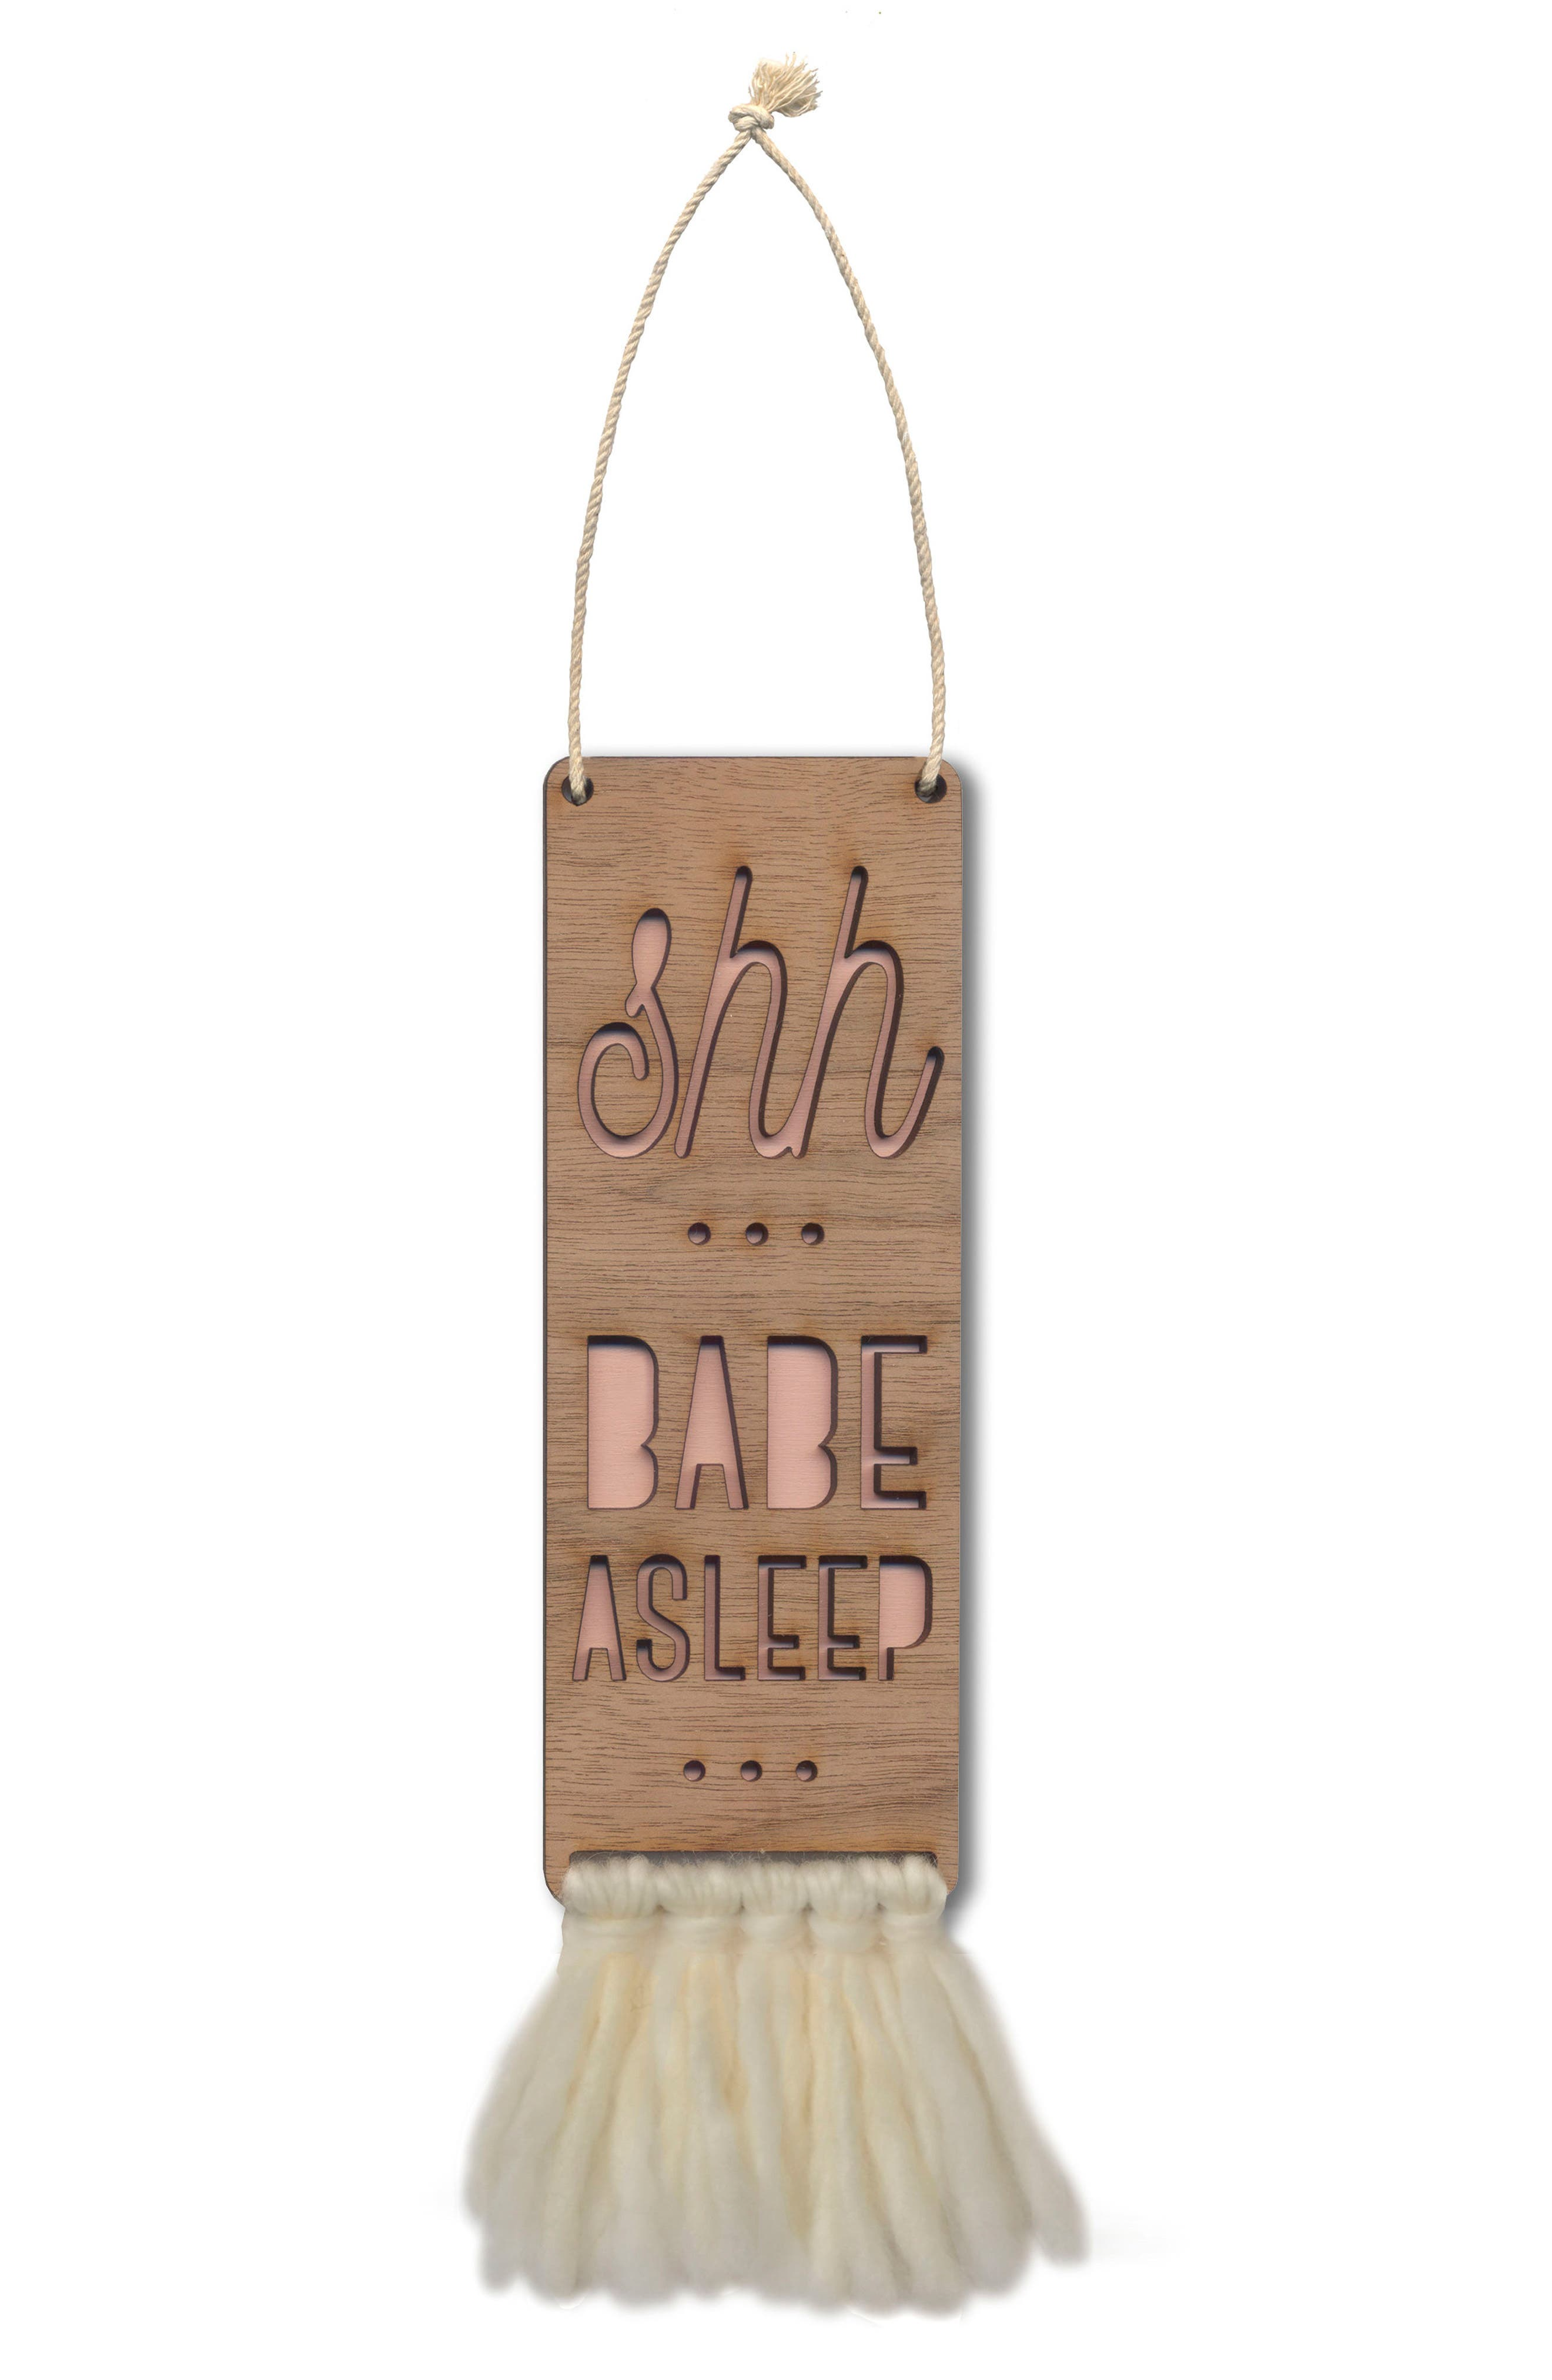 Tree by Kerri Lee Shh Babe Asleep Door Sign